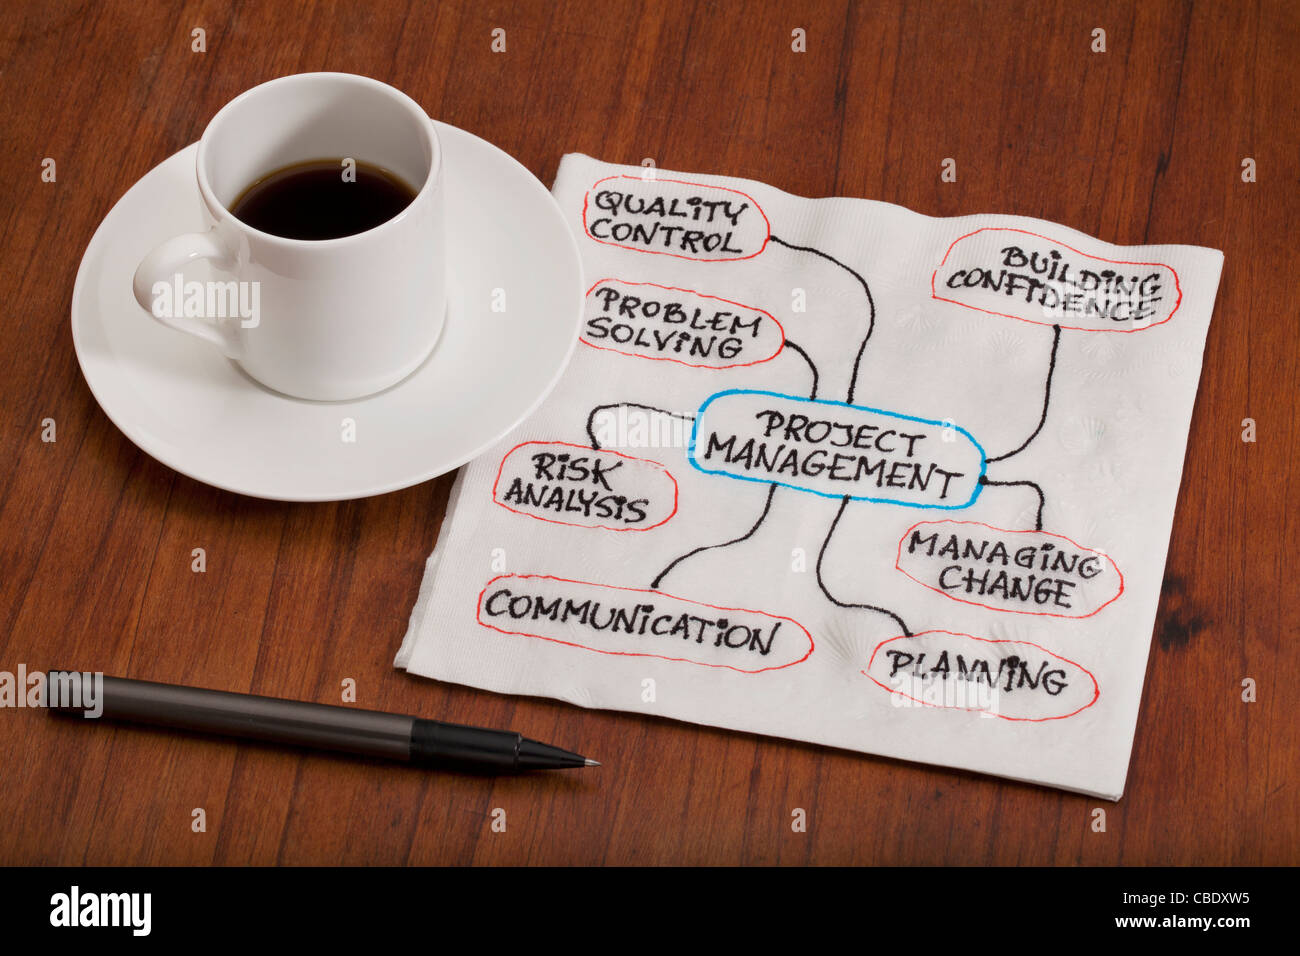 project management concept - flowchart or mind map as a napkin doodle on table with espresso coffee cup - Stock Image